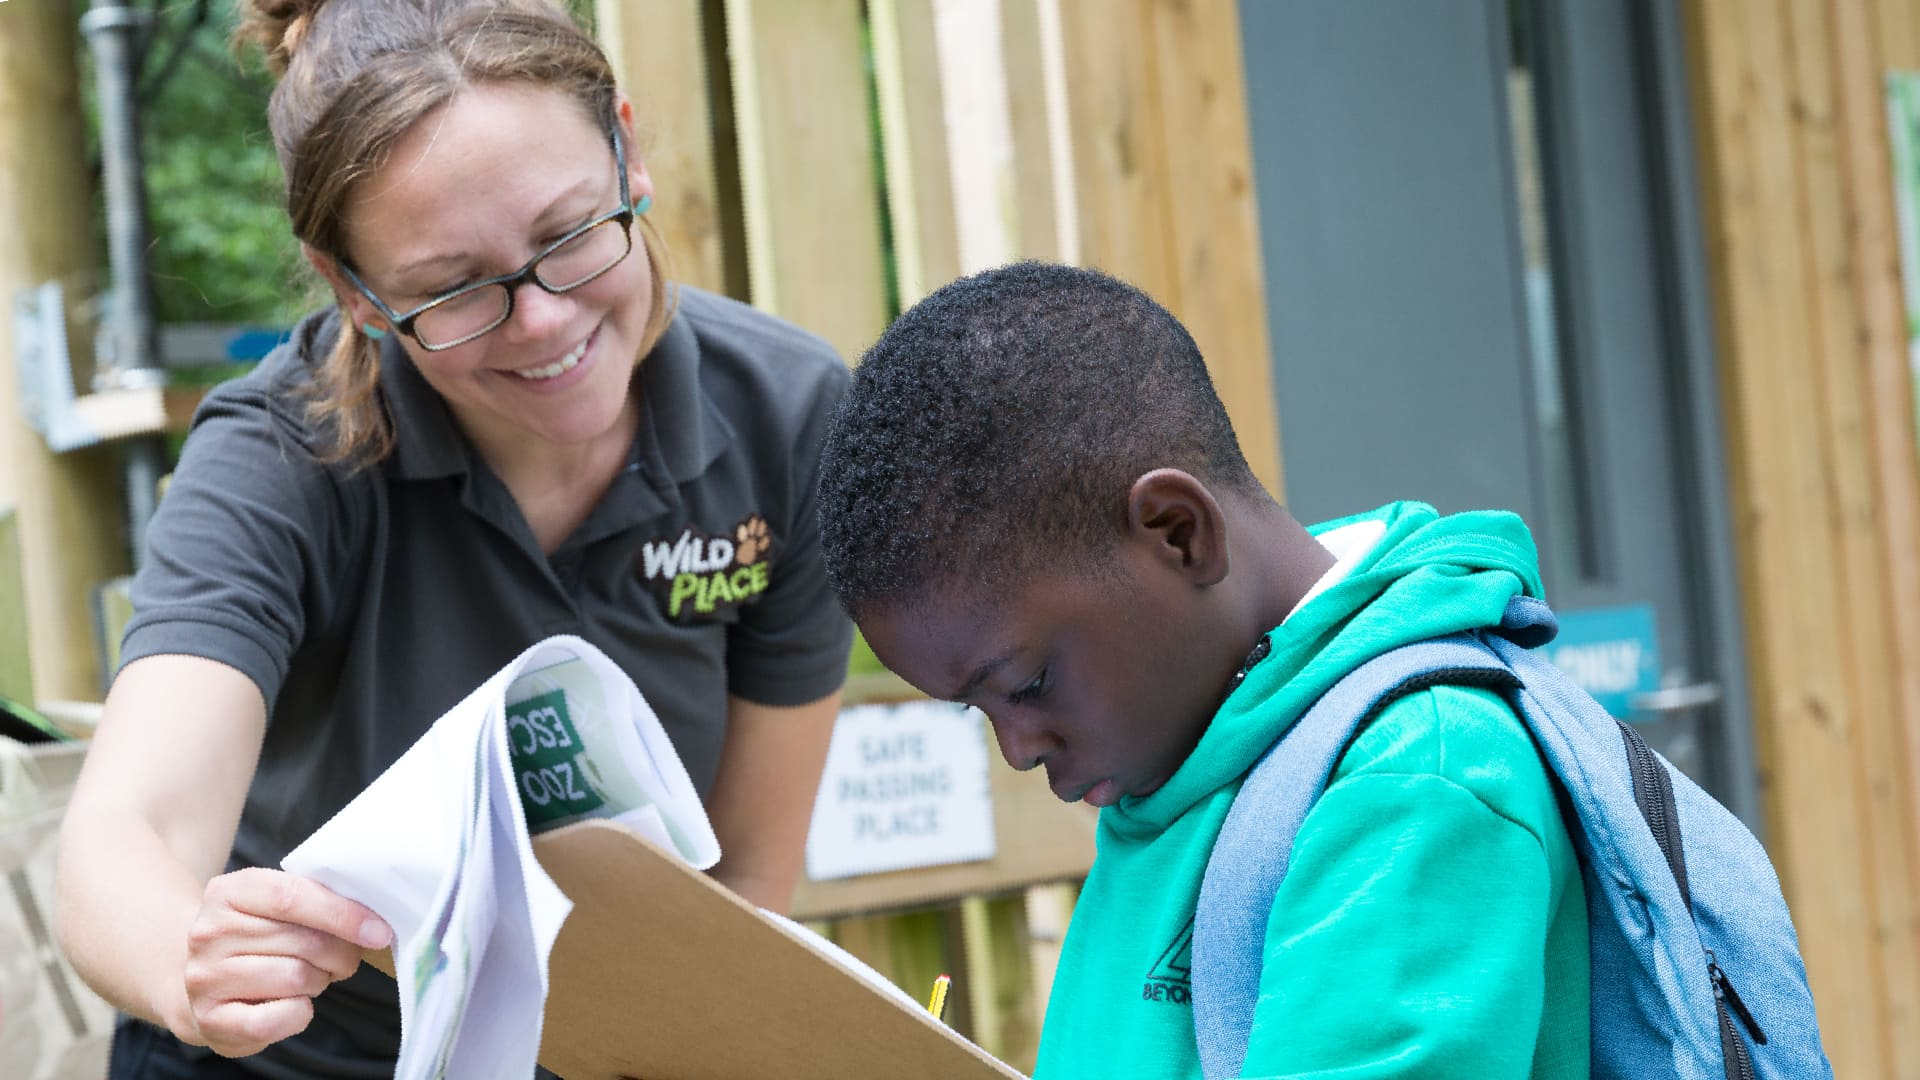 Primary school pupil taking part in a trail at Wild Place Project